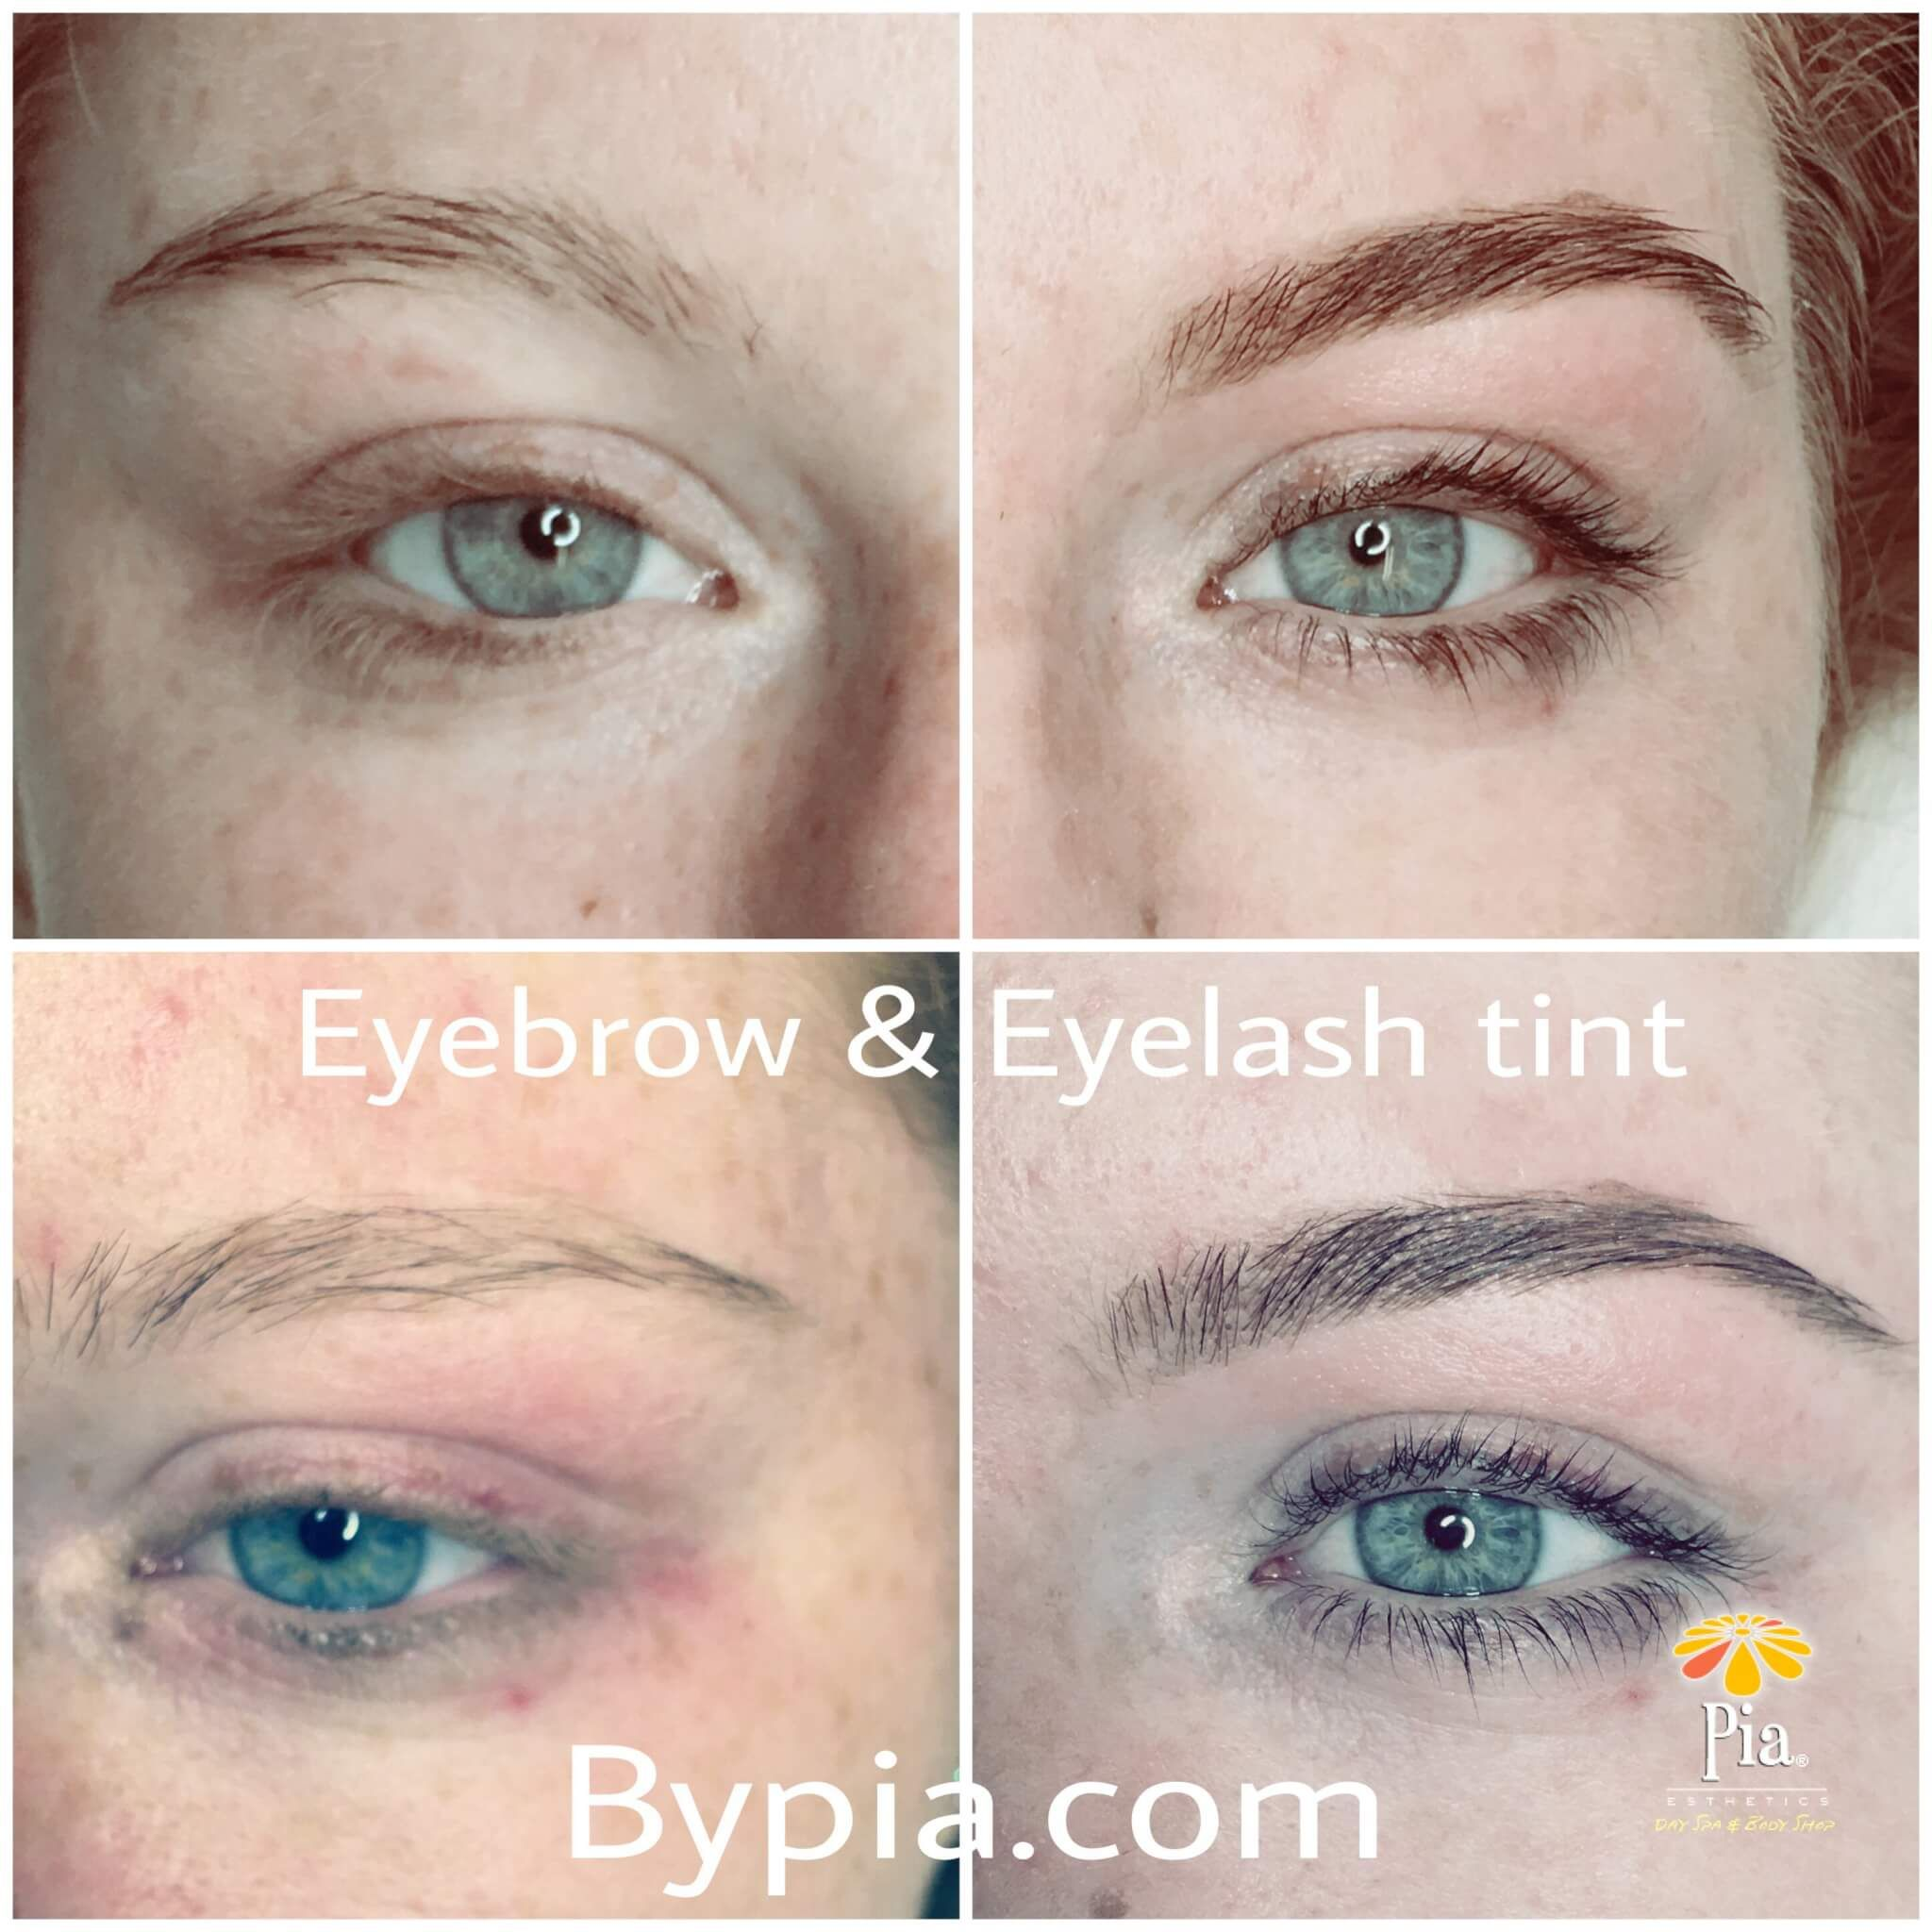 Blonde Clients Will Love It Eyebrow Eyelash Tint From Our Blog